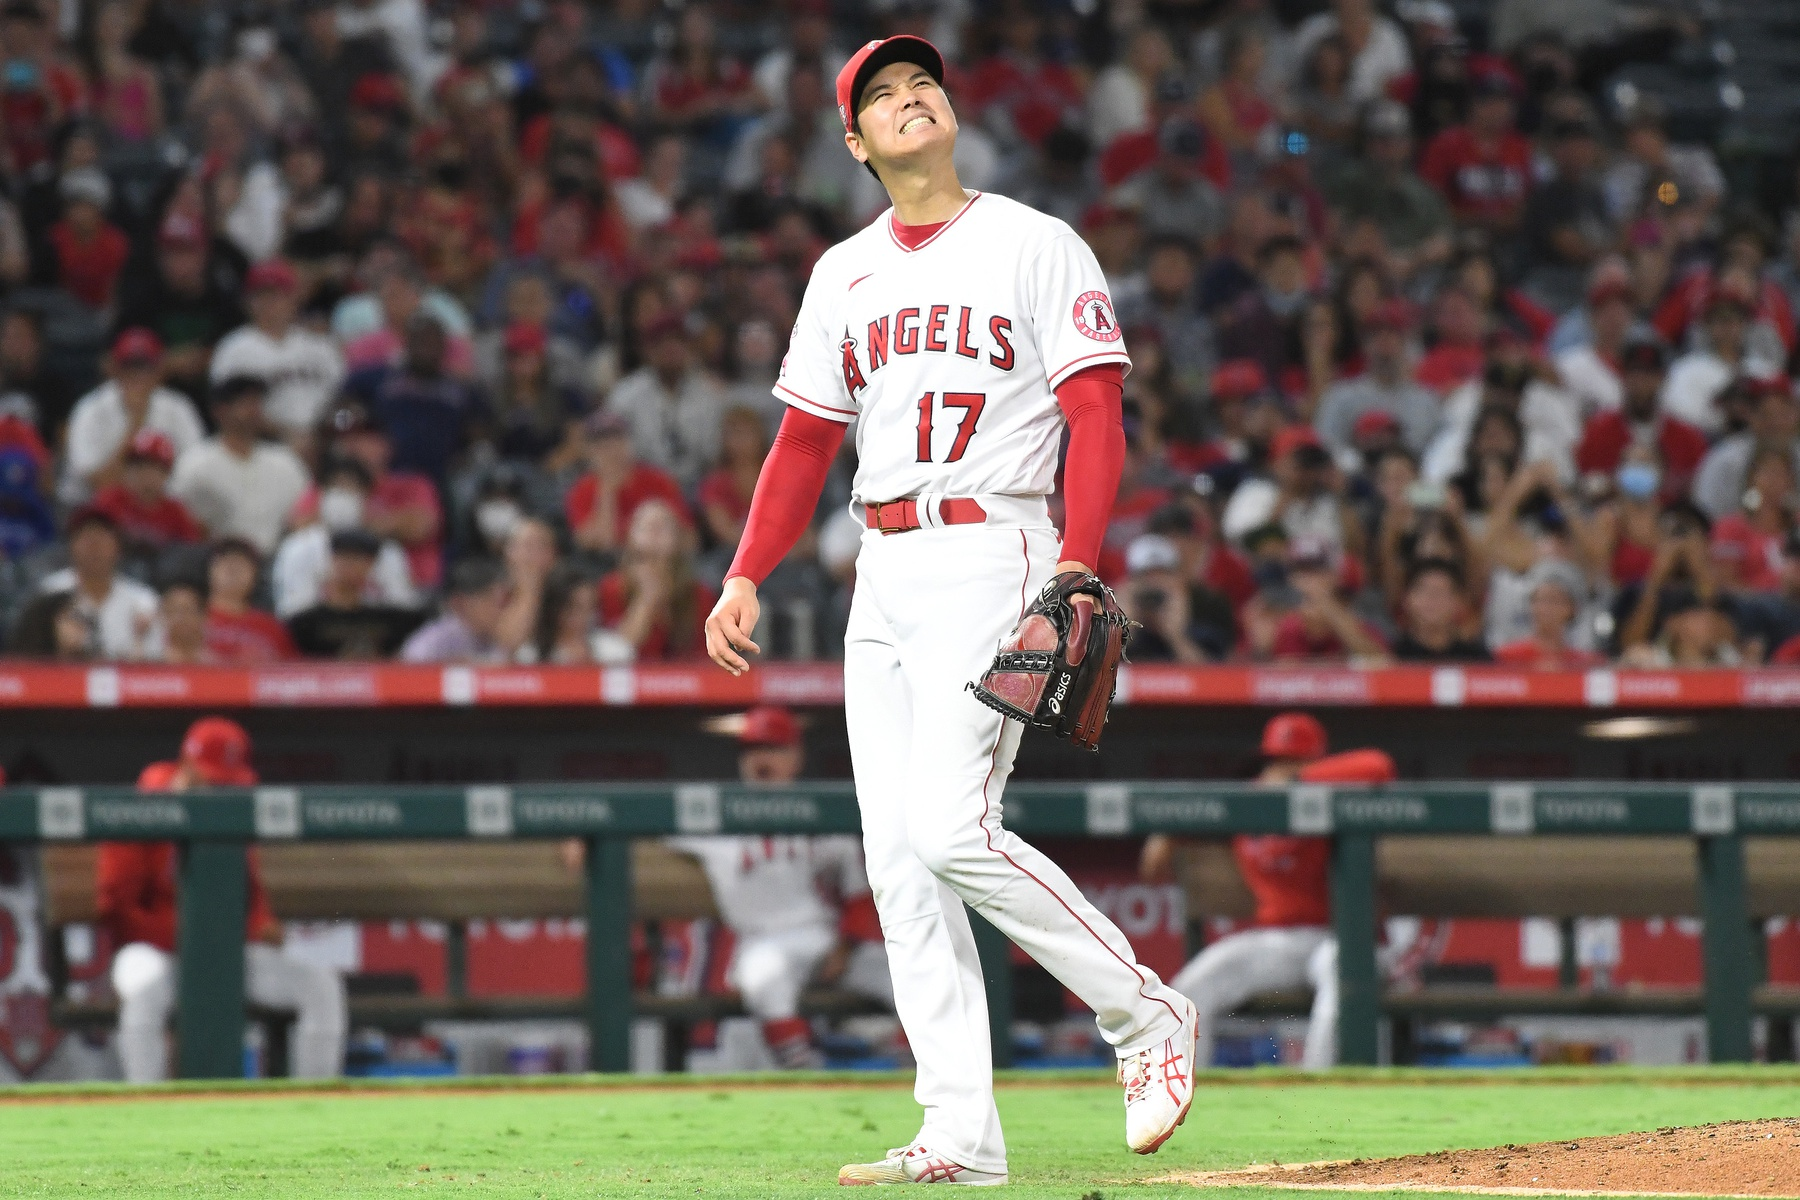 Houston Astros vs Los Angeles Angels Prediction, 8/14/2021 MLB Pick, Tips and Odds